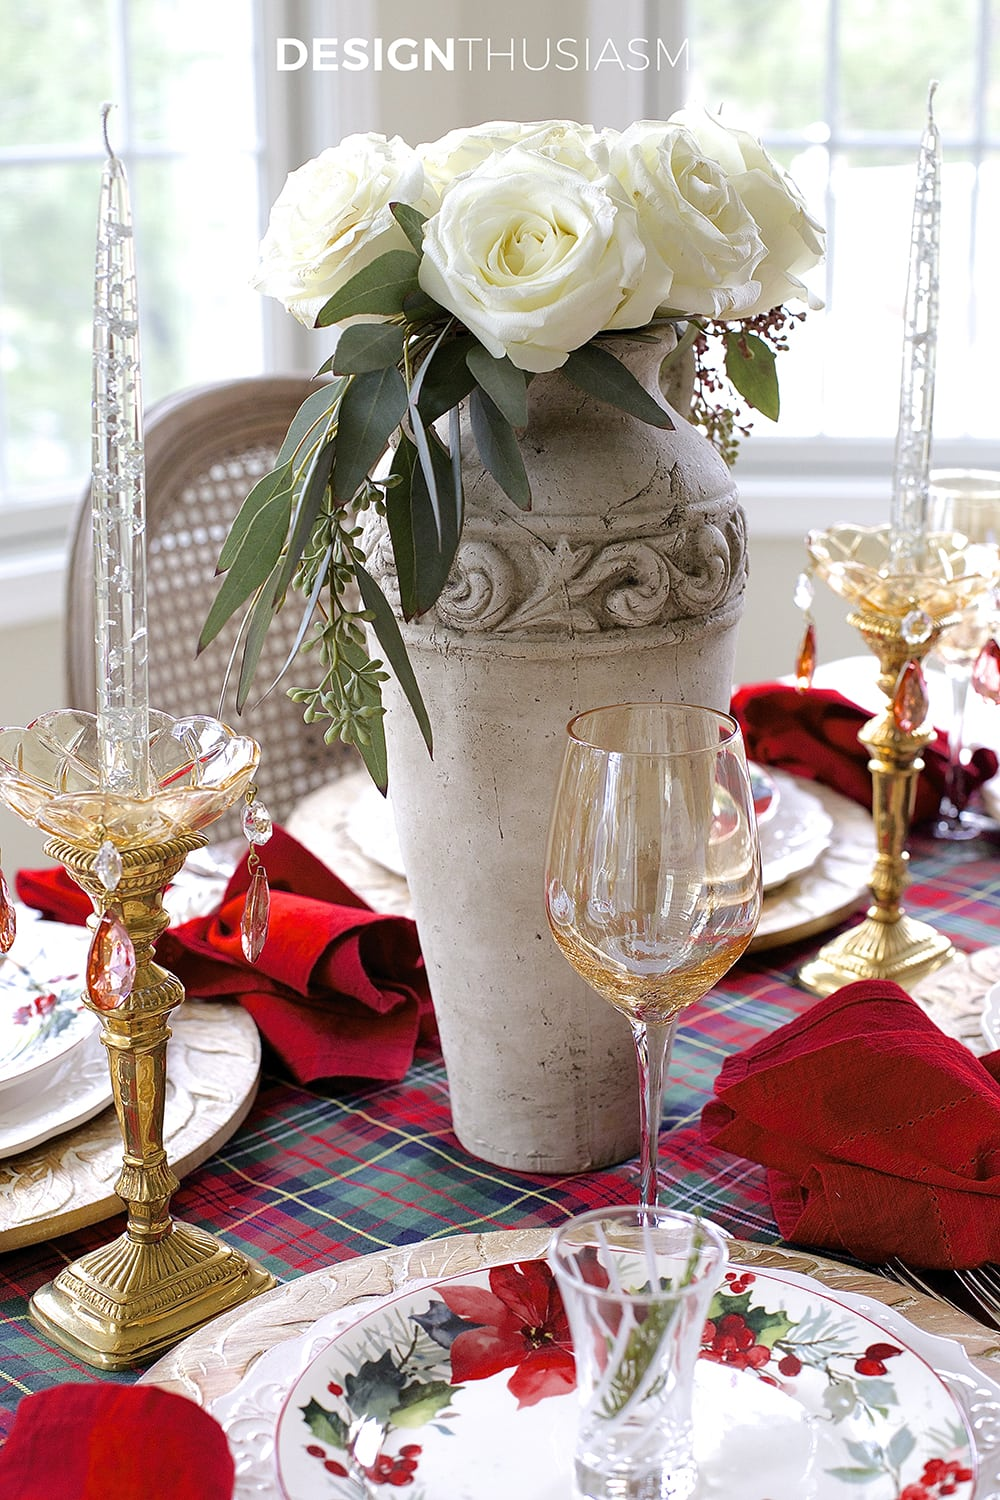 Cozy Christmas Tablescape with Floral and Plaid | Designthusiasm